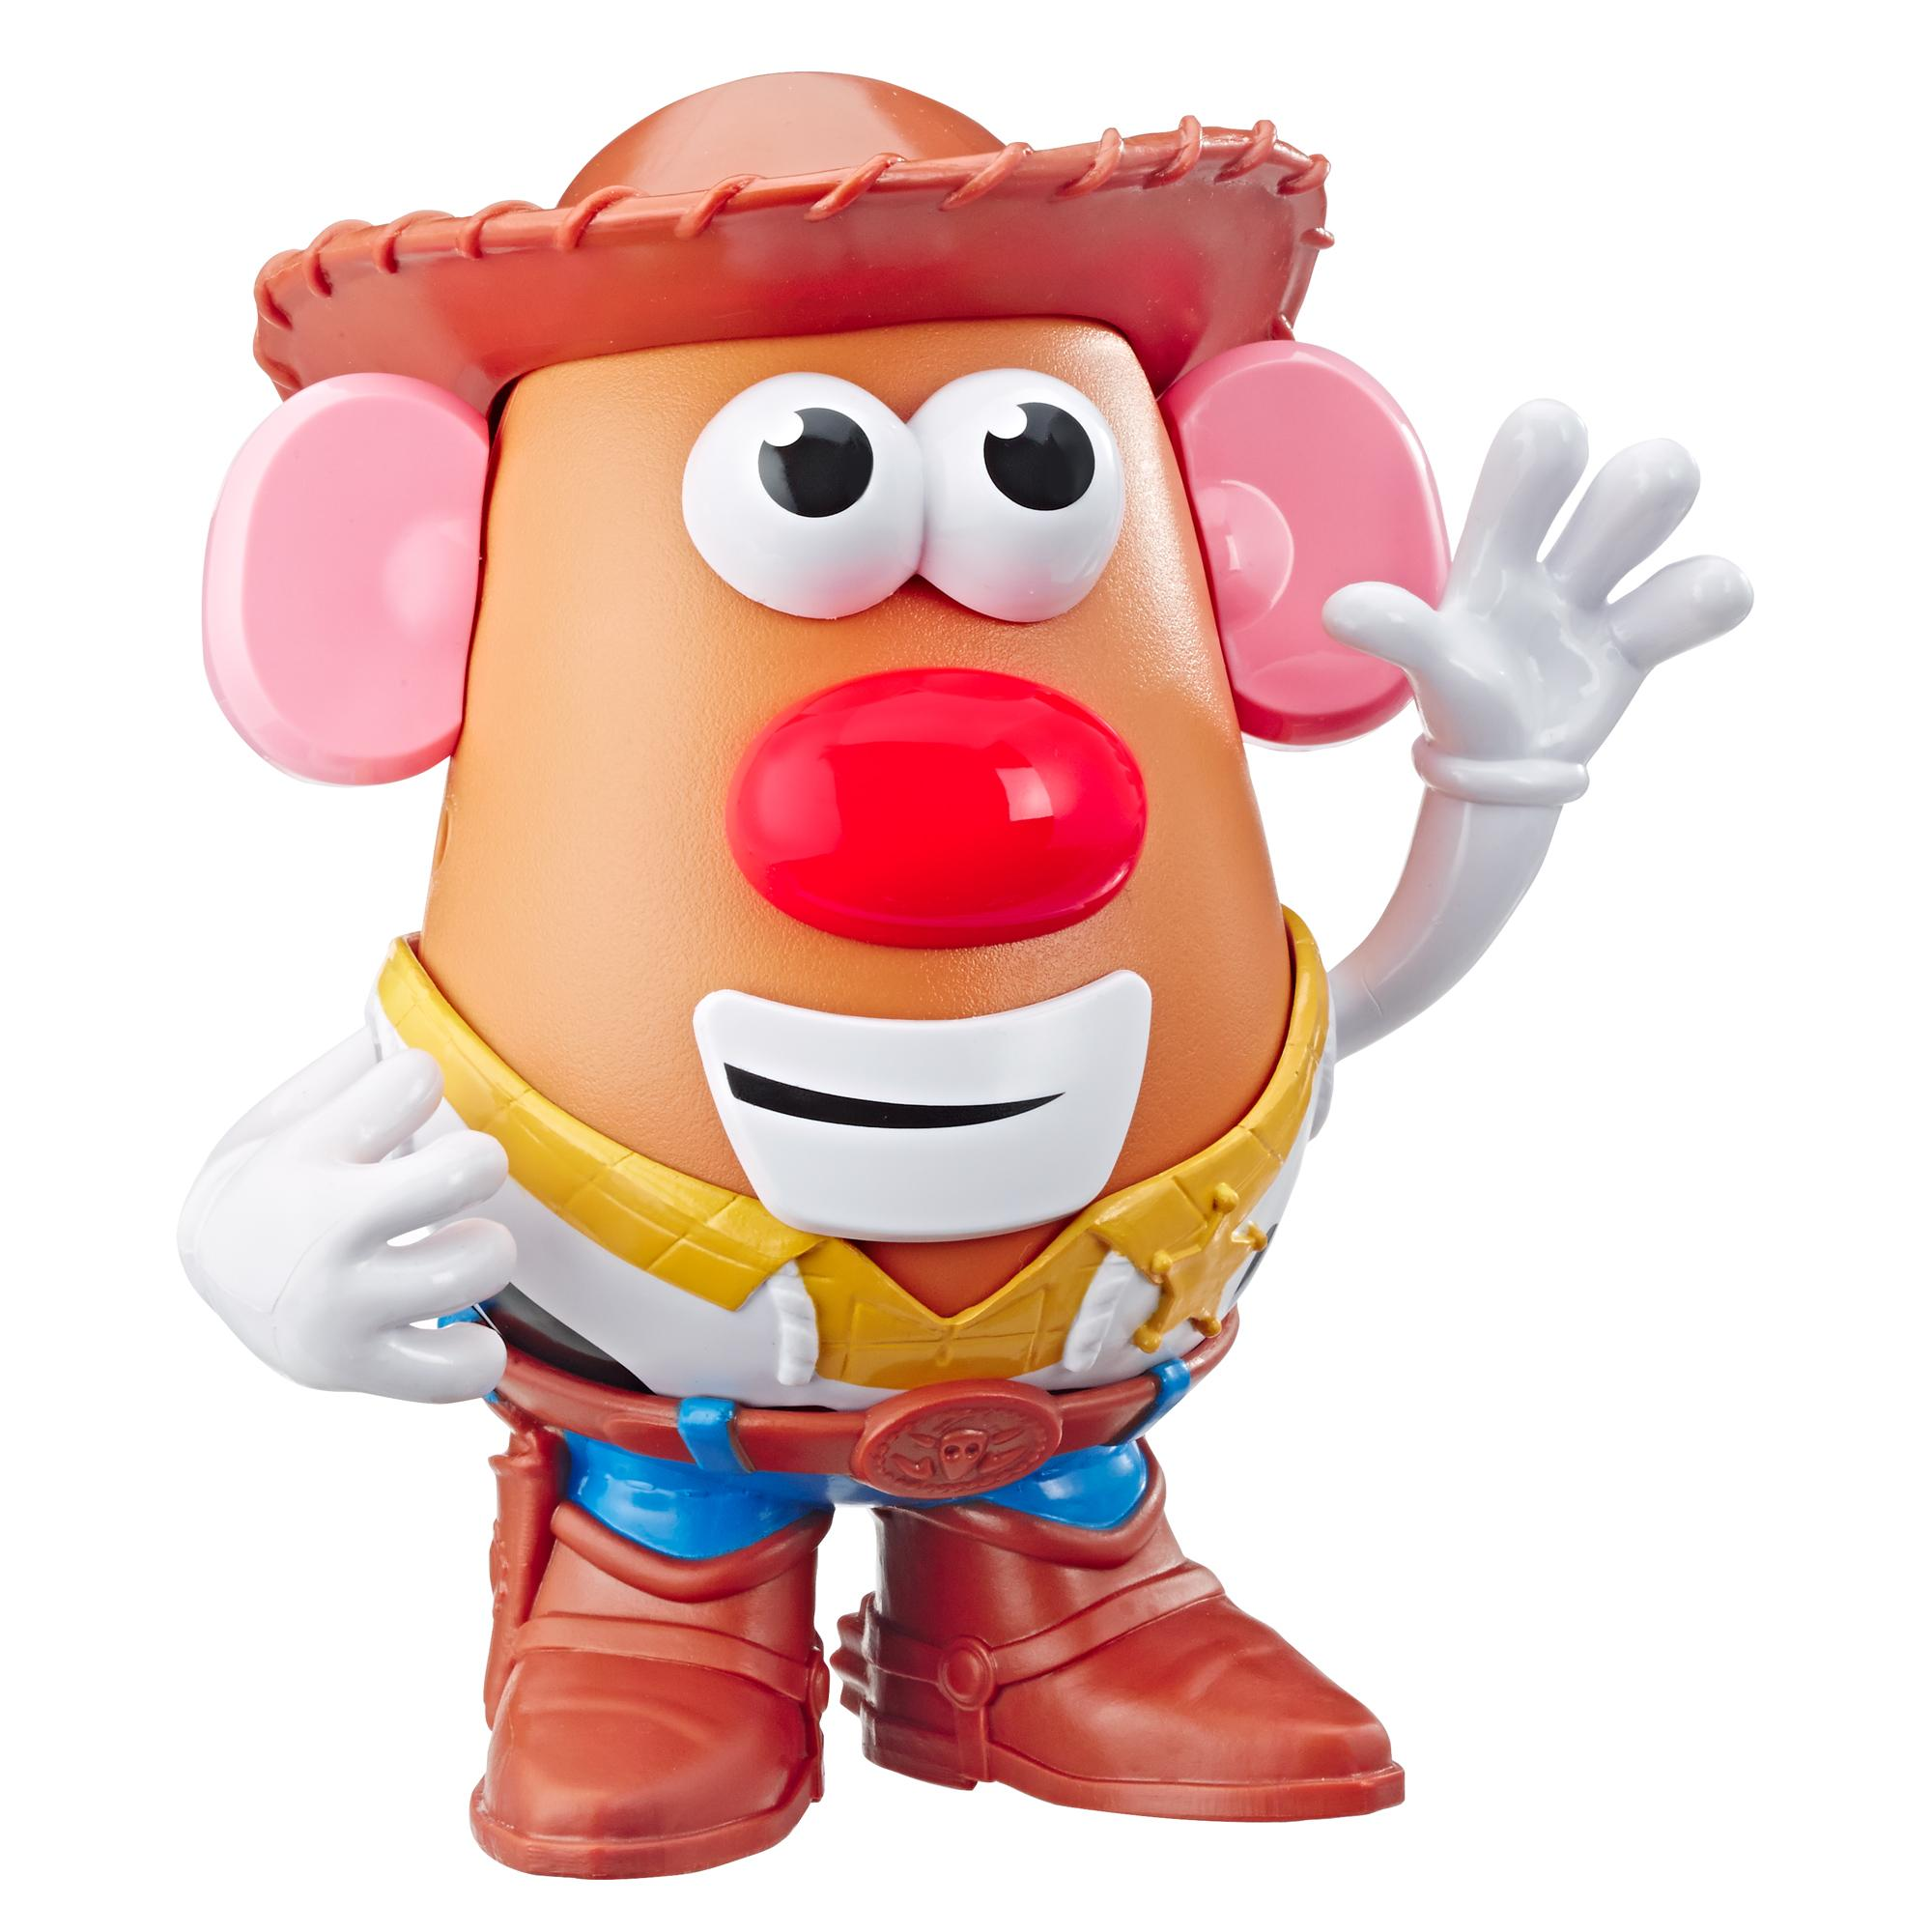 Mr. Potato Head Disney/Pixar Toy Story 4 Woody's Tater Roundup Figure